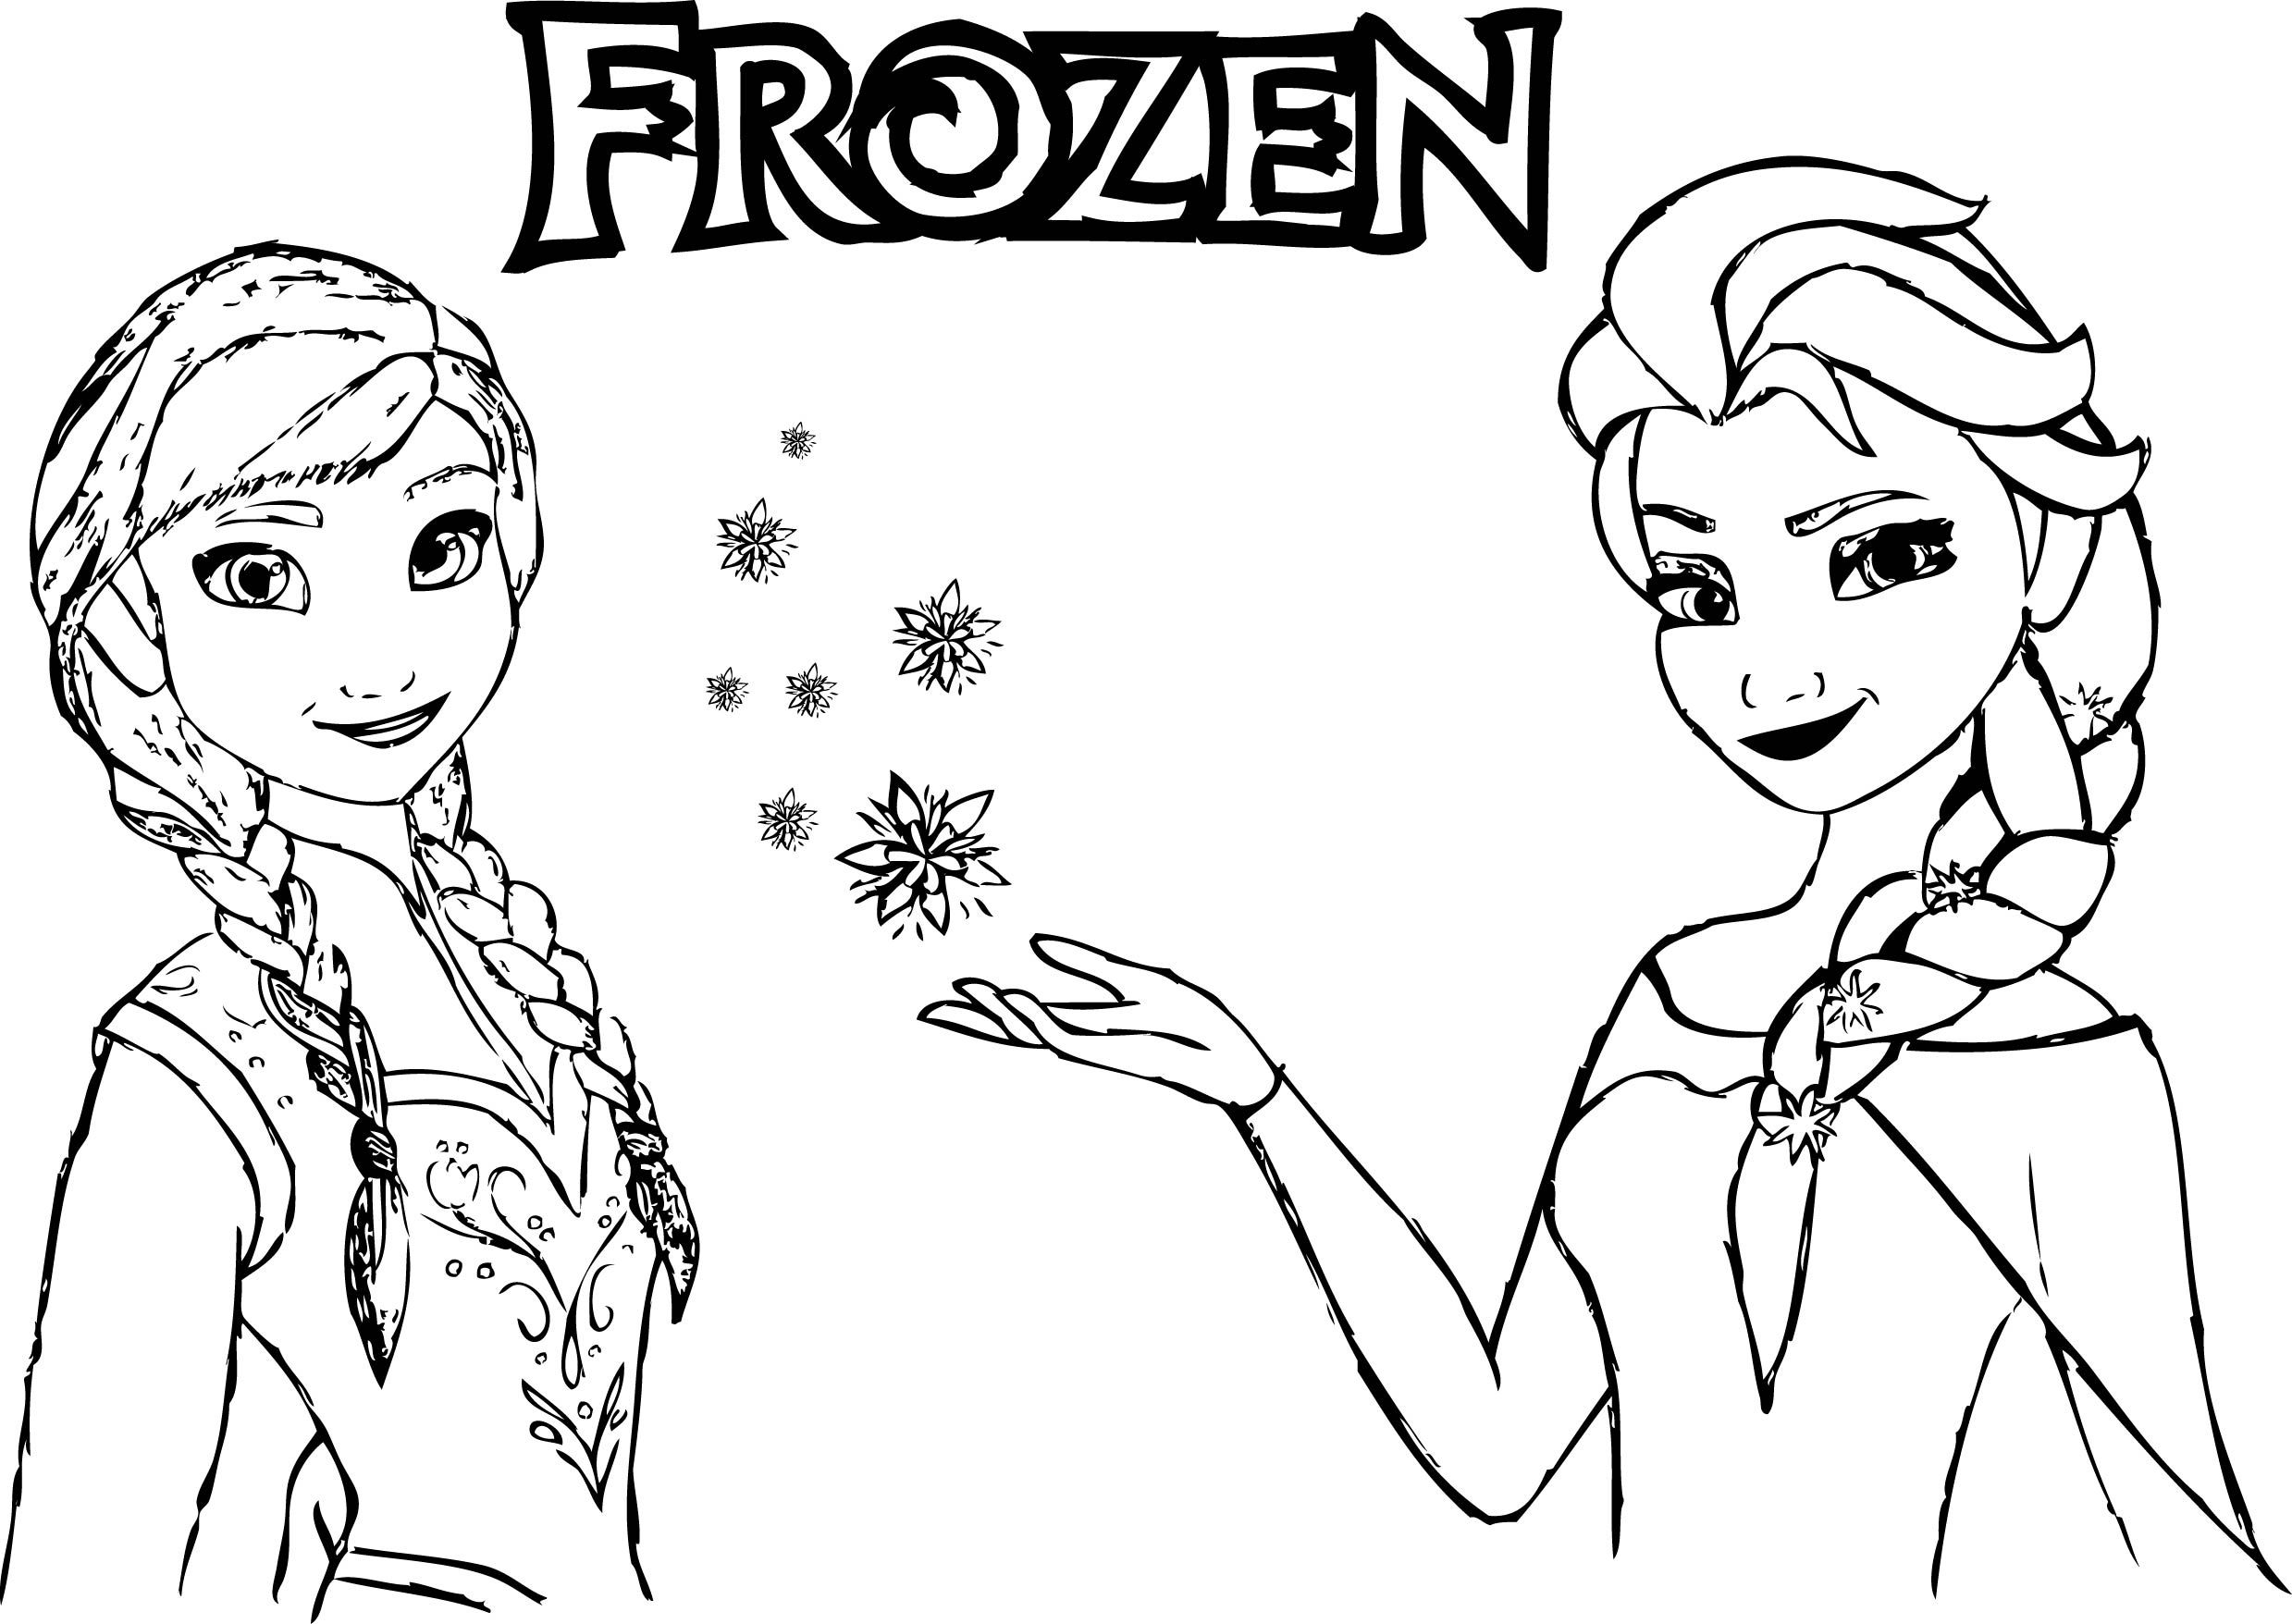 frozen elsa and anna coloring pages frozen drawing anna and elsa at getdrawings free download anna elsa coloring frozen pages and